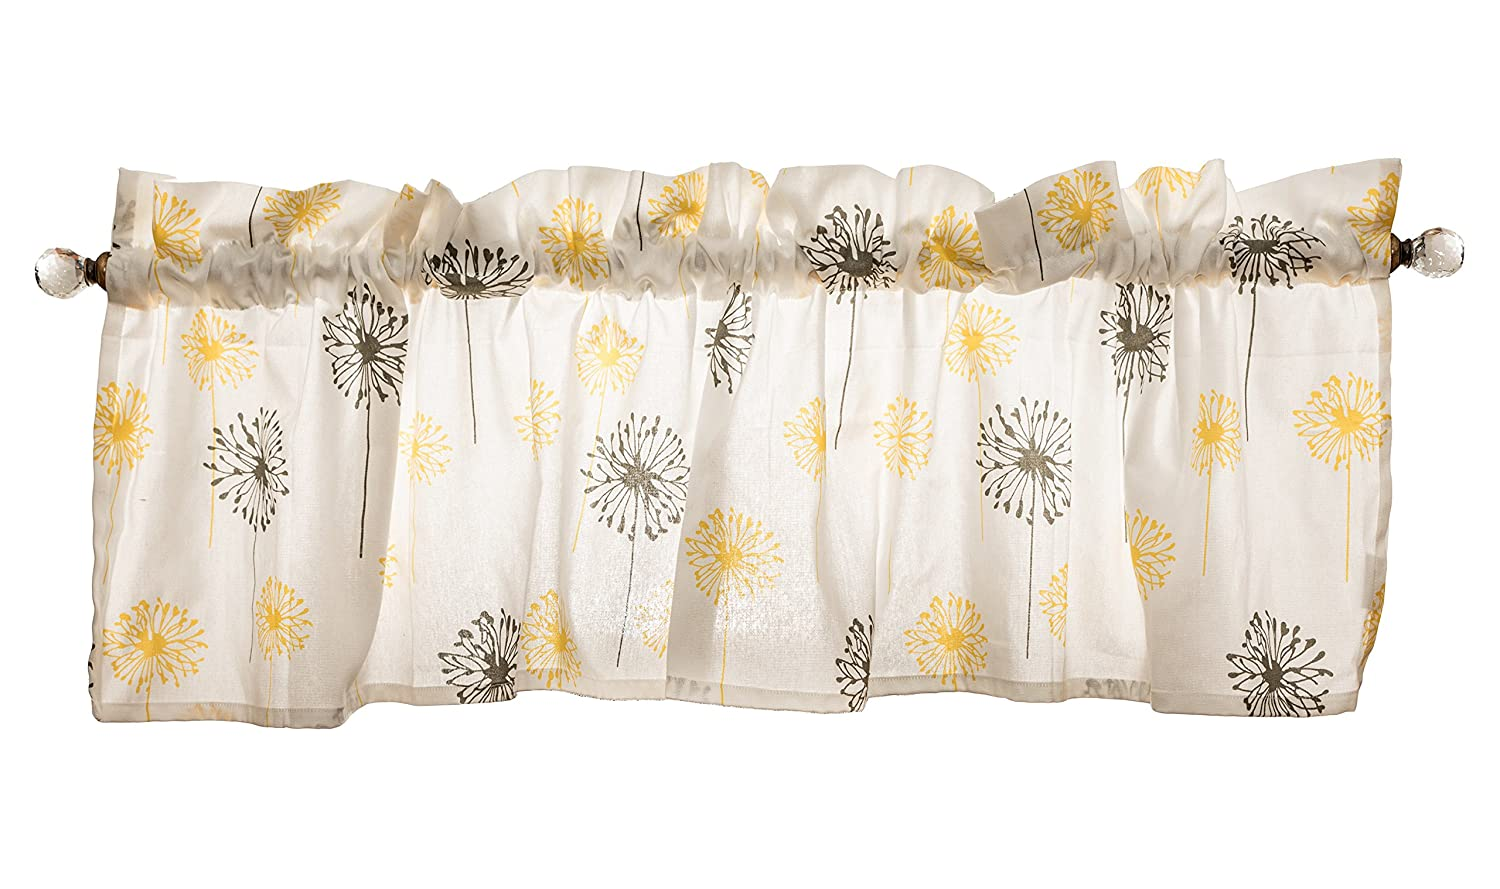 Crabtree Collection Grey & Yellow Dandelion Curtain Valance for Windows - 40cm x 152cm PWV-2016